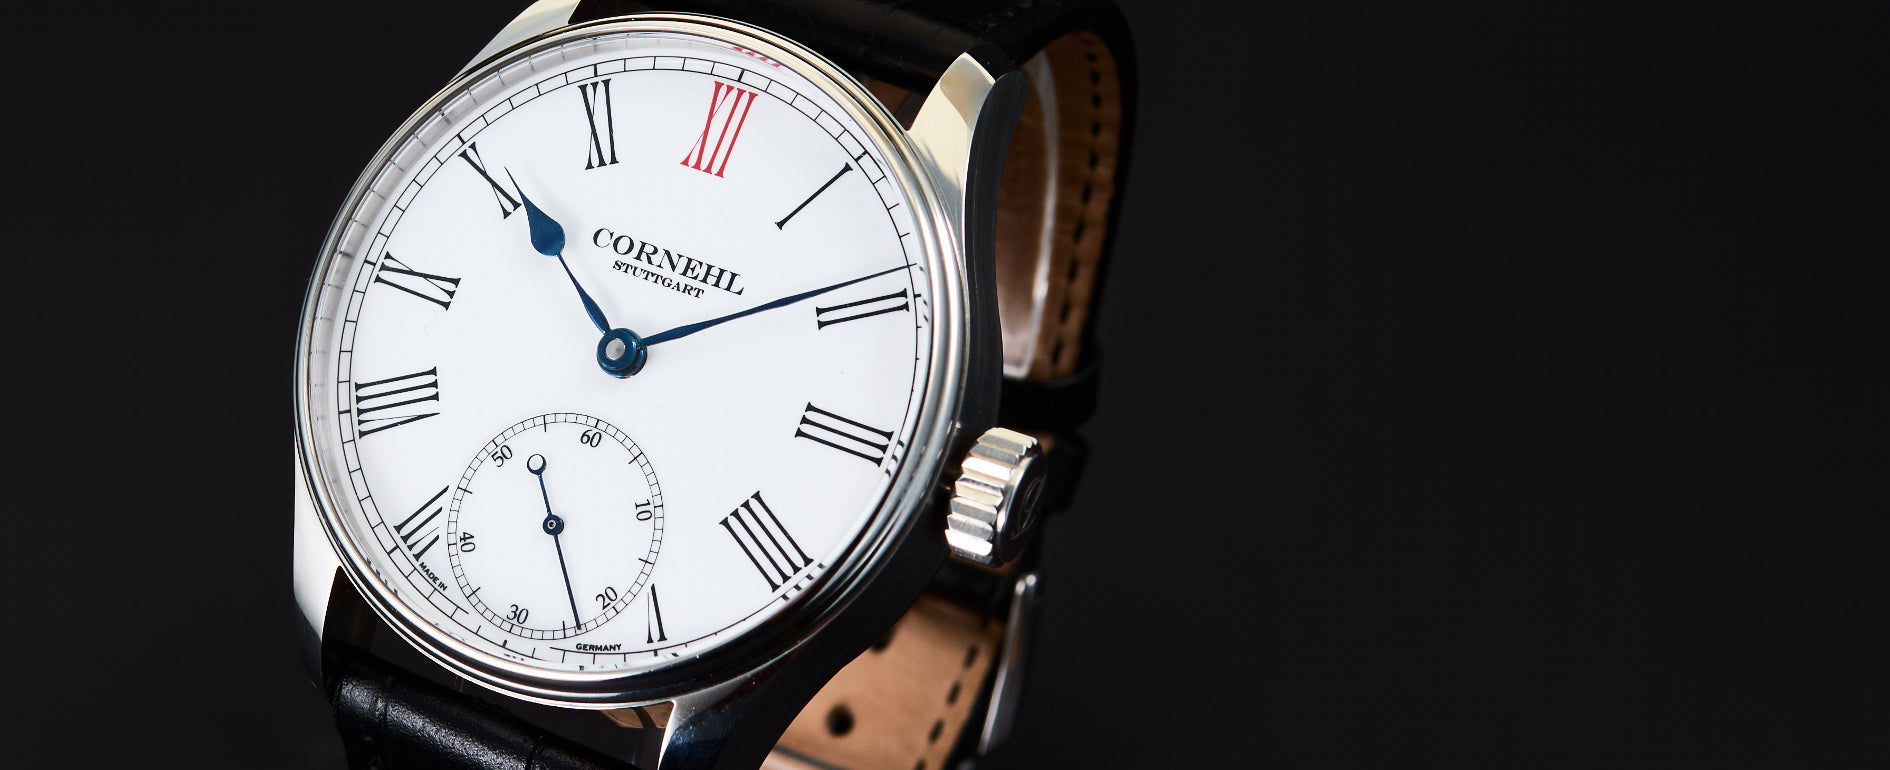 Cornehl Watches